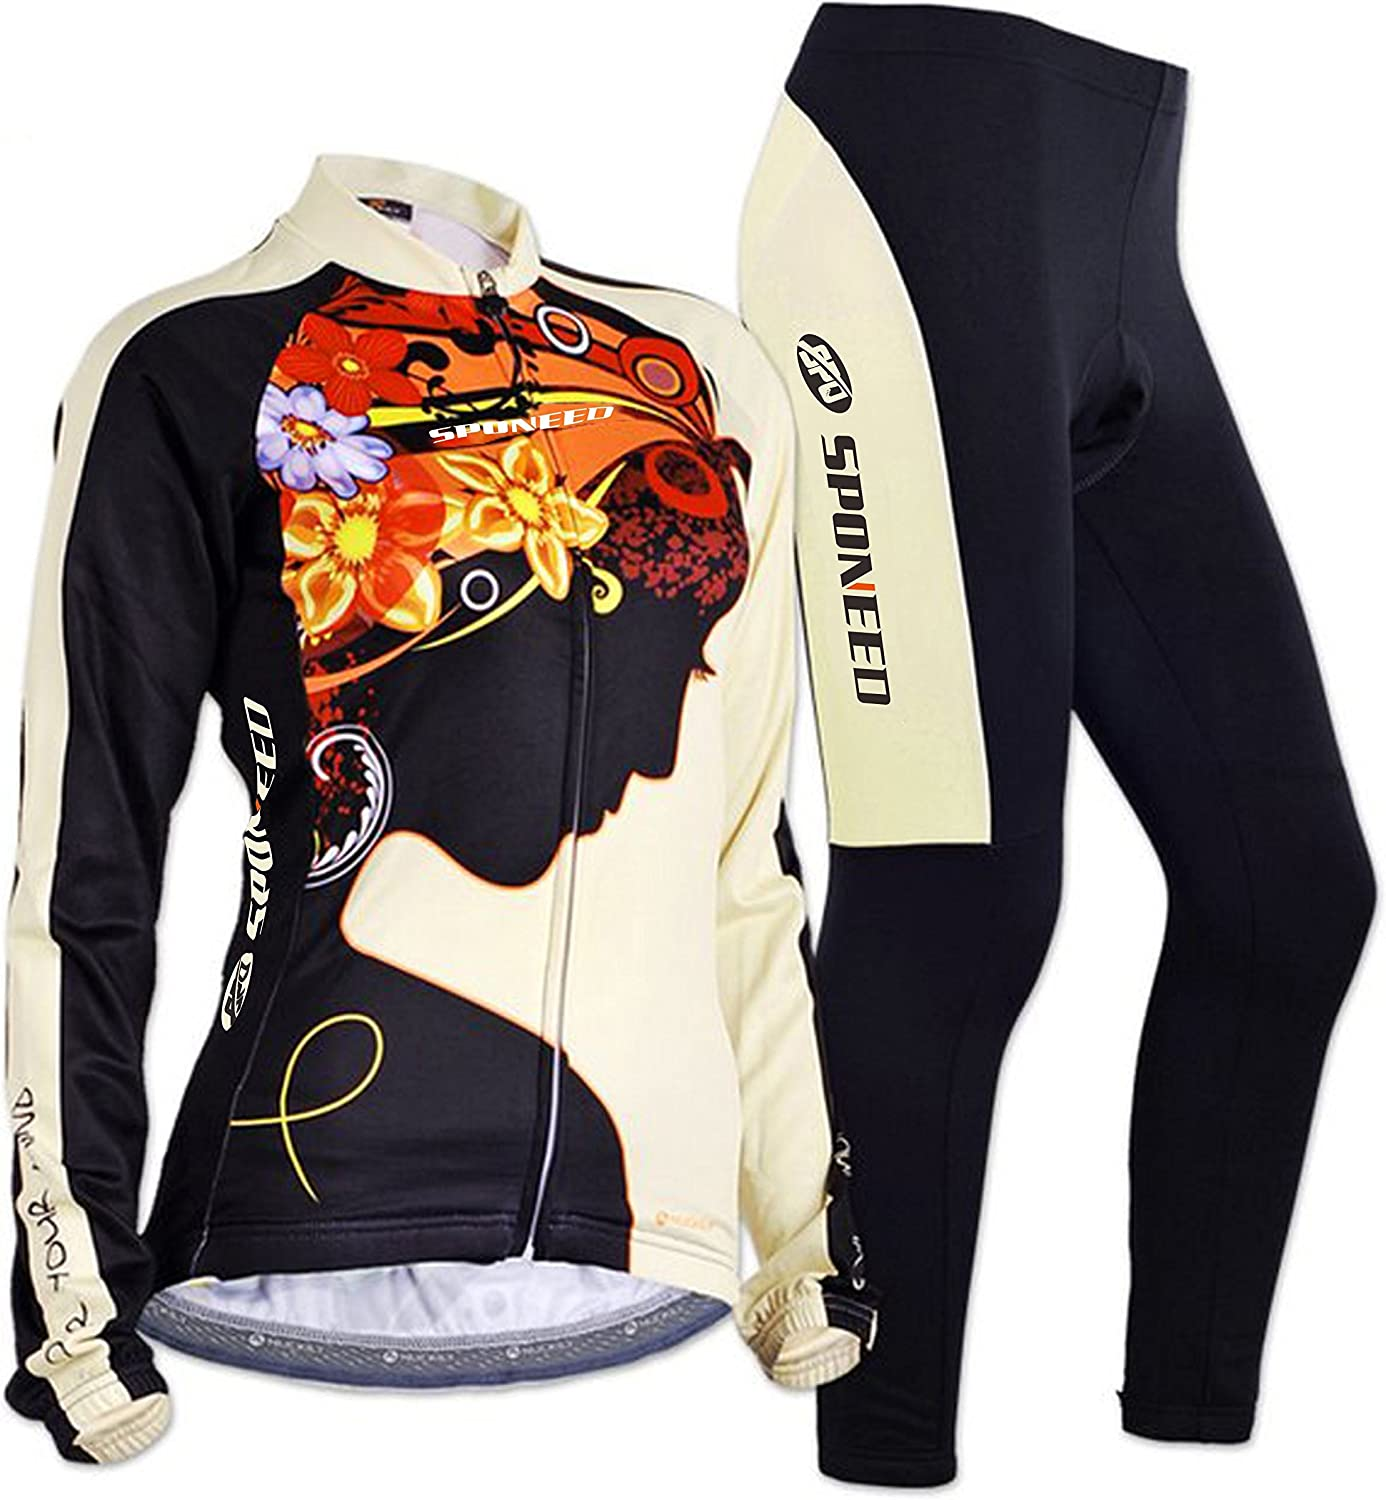 Sponeed Cycling Jersey Women colorful Long Sleeve Shirt Pants Set UV Predective